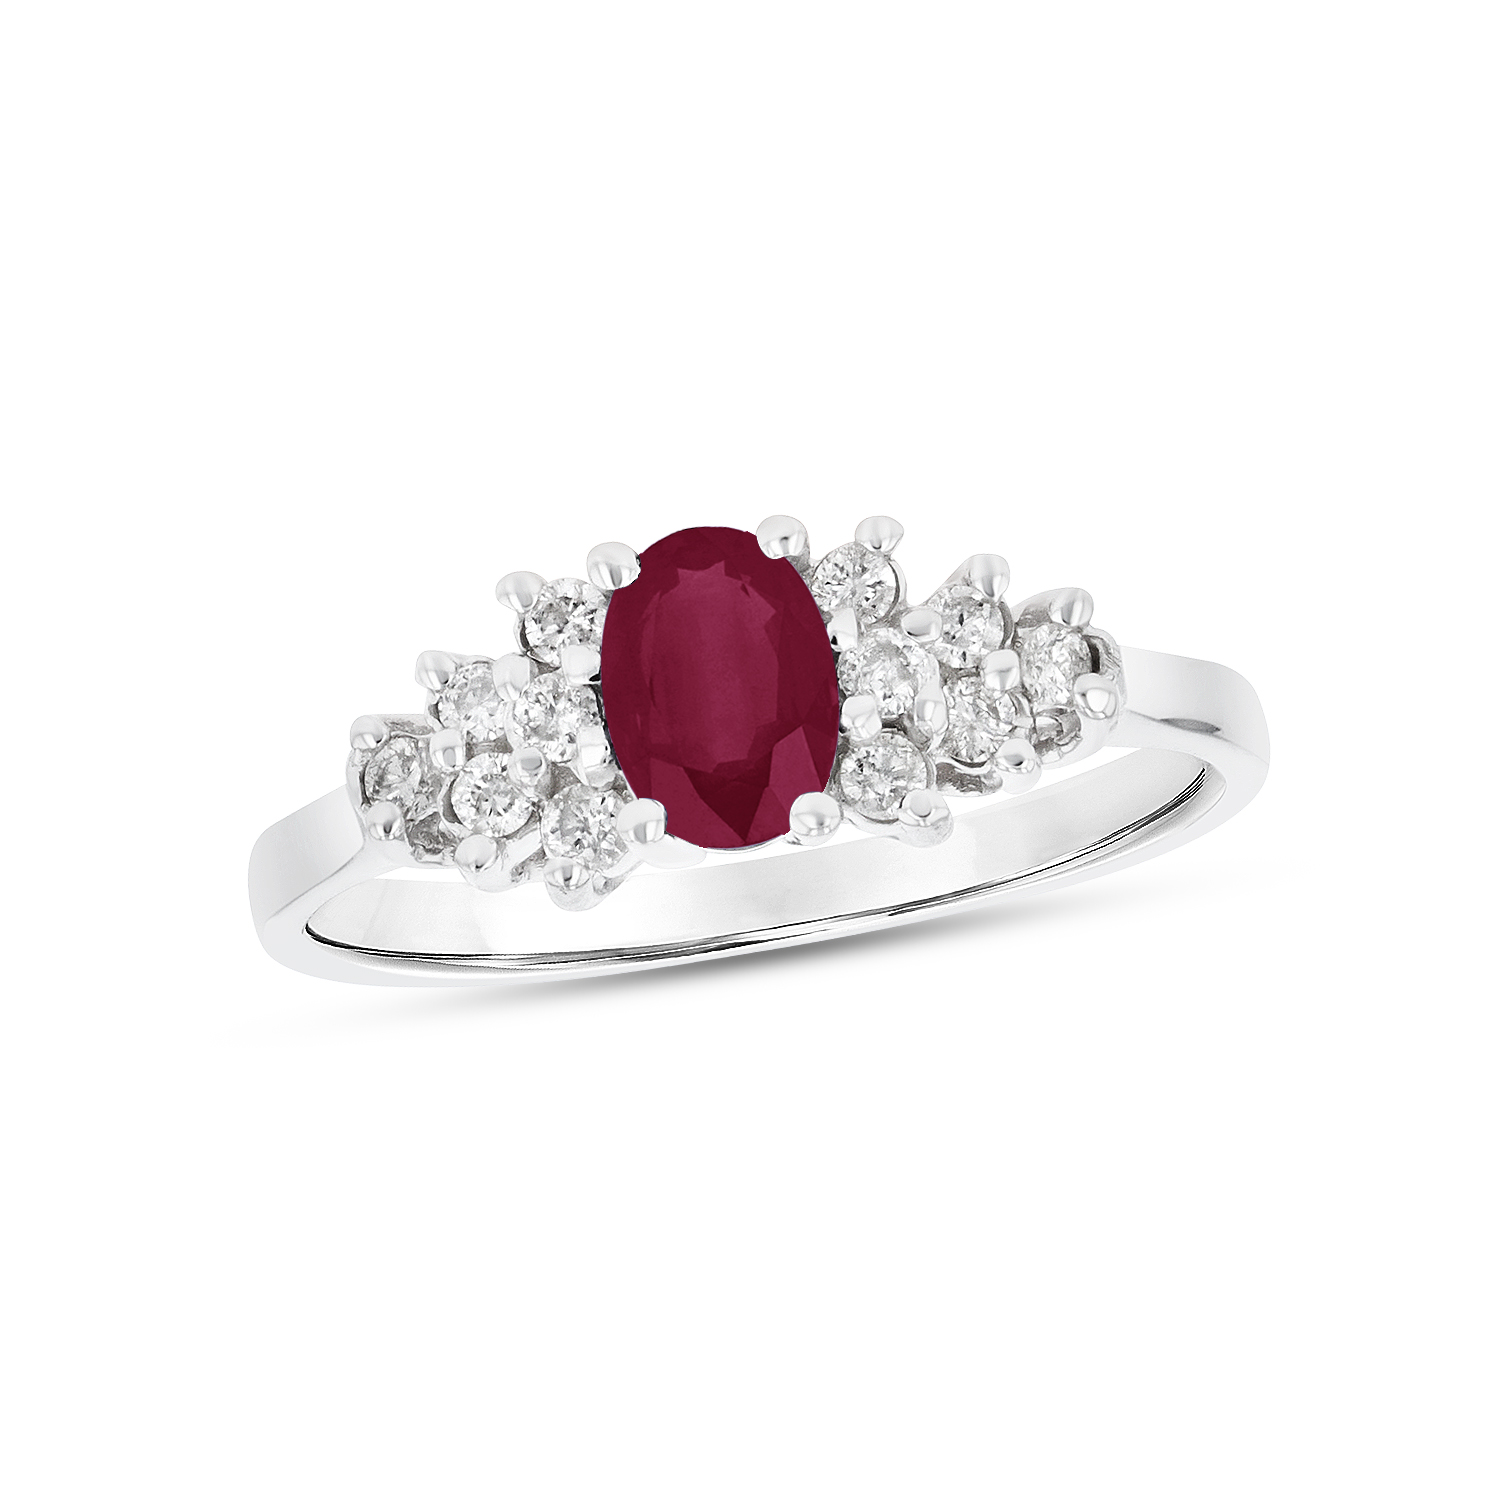 View 0.63ctw Diamond and Ruby Ring in 14k White Gold